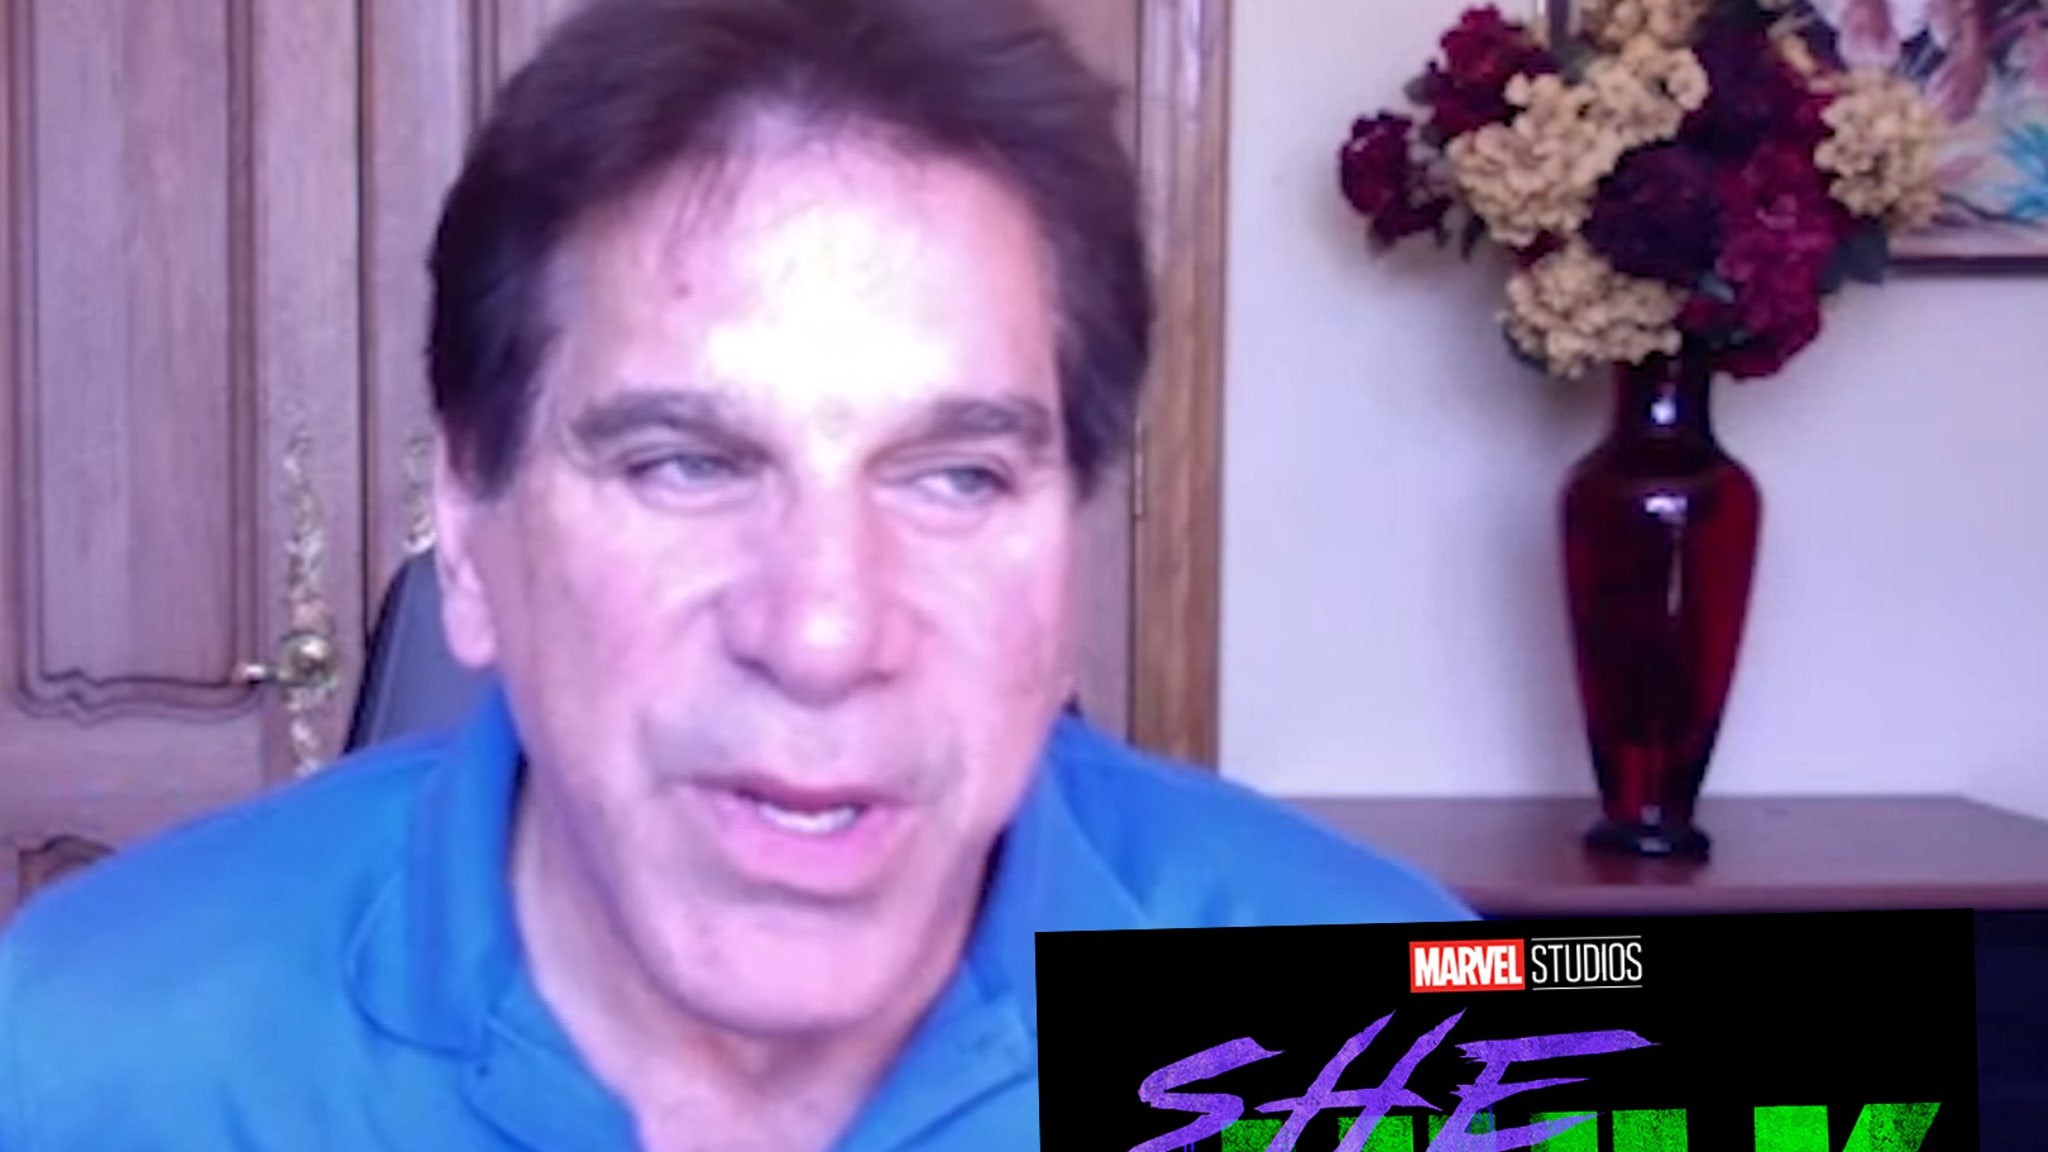 Lou Ferrigno on what to avoid in the new She-Hulk series